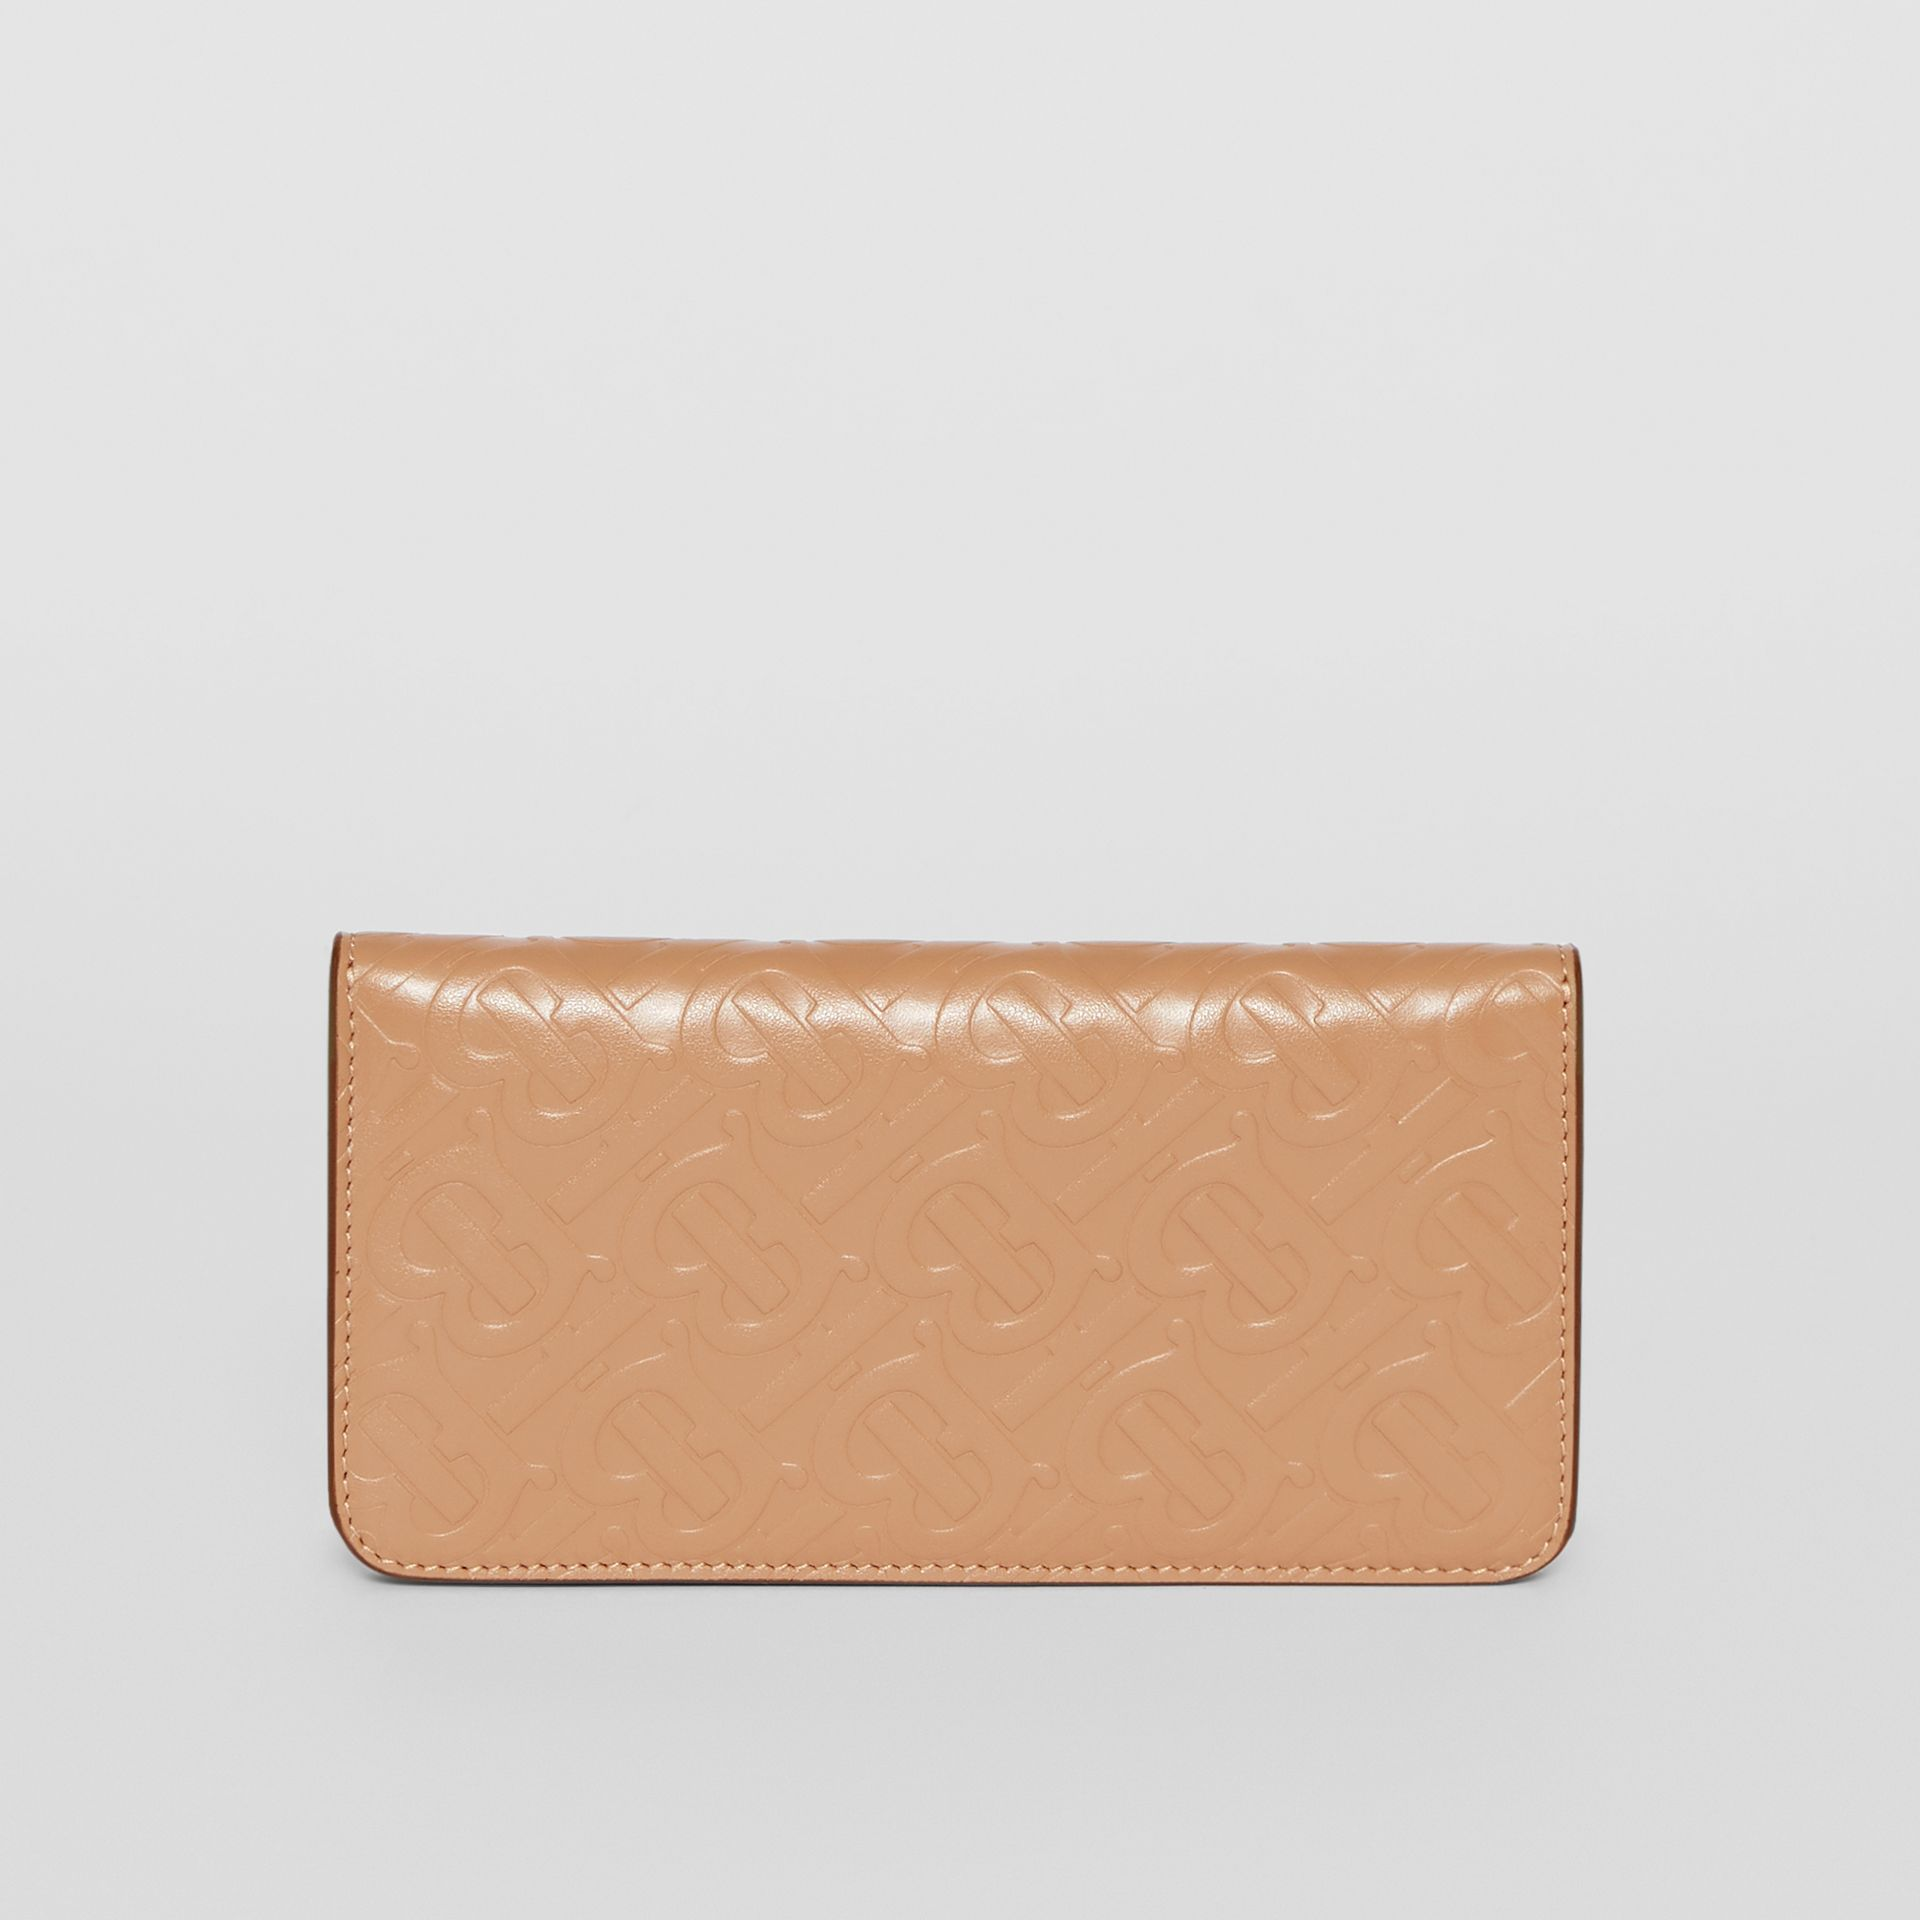 Monogram Leather Phone Wallet in Light Camel | Burberry - gallery image 5